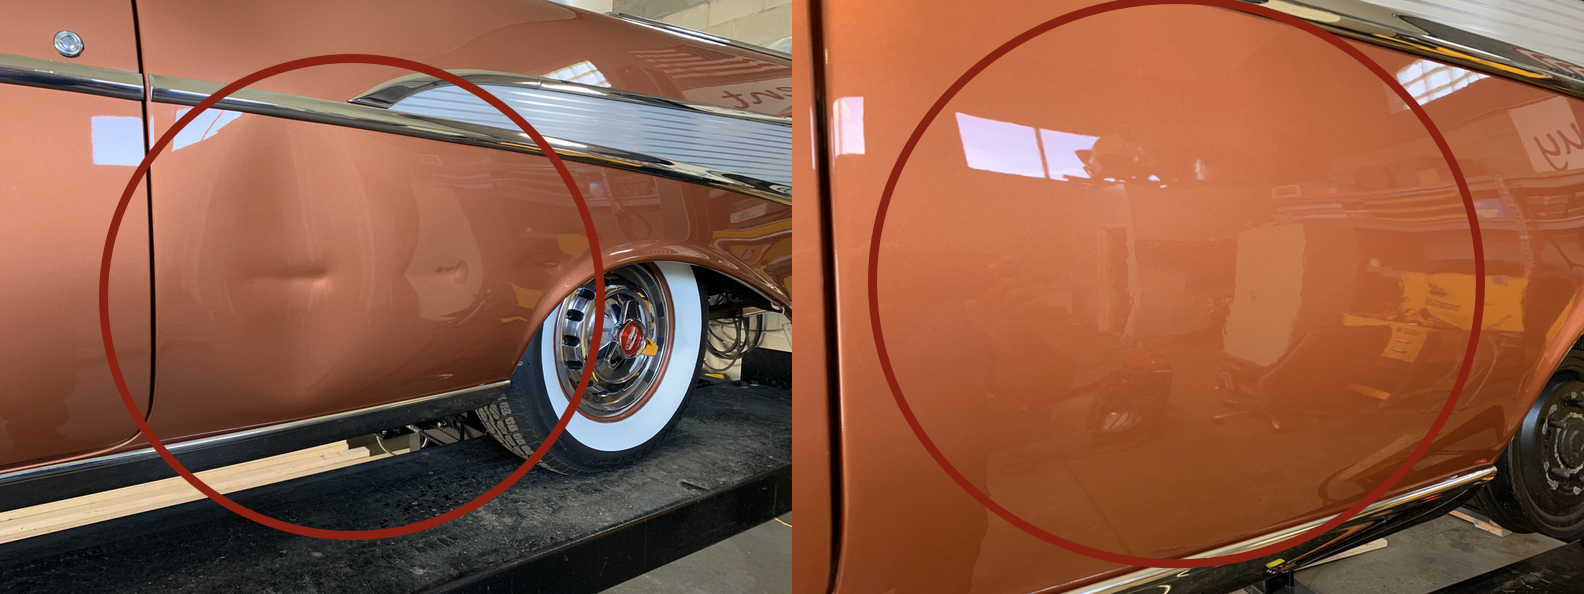 BEFORE & AFTER: EXTREMELY LARGE DENT & VERY DEEP DENTS IN QUARTER PANEL; DENTS REMOVED THROUGH GLUE PULLING PDR AND PAINTLESS DENT REPAIR BY THE DENT GUY